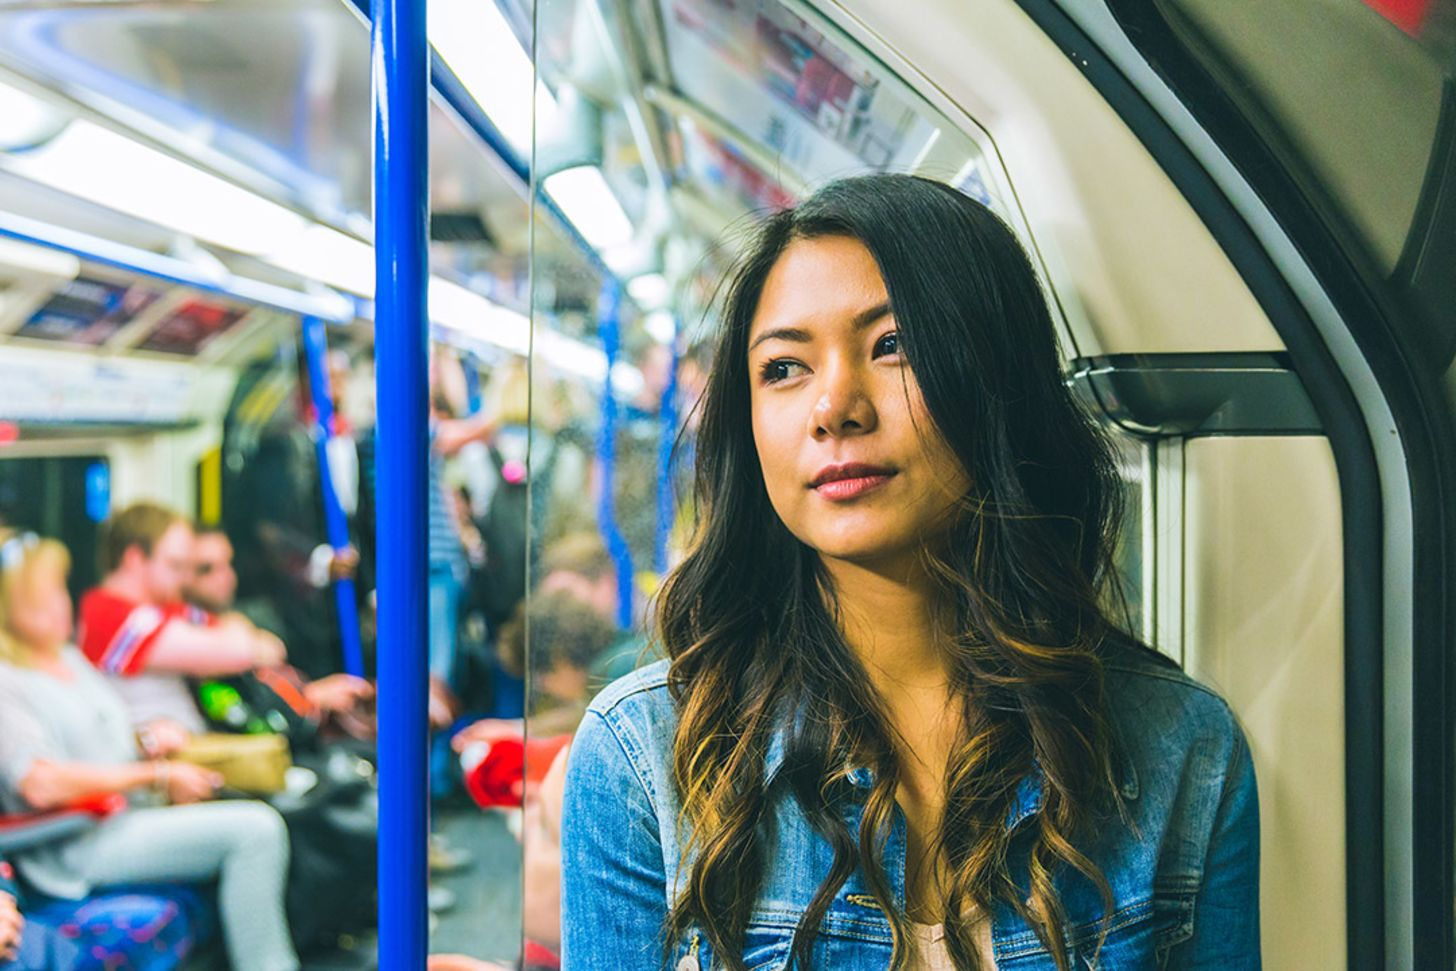 Travel from home straight to a customer? The rules have changed. Image of a woman on a train | Crunch